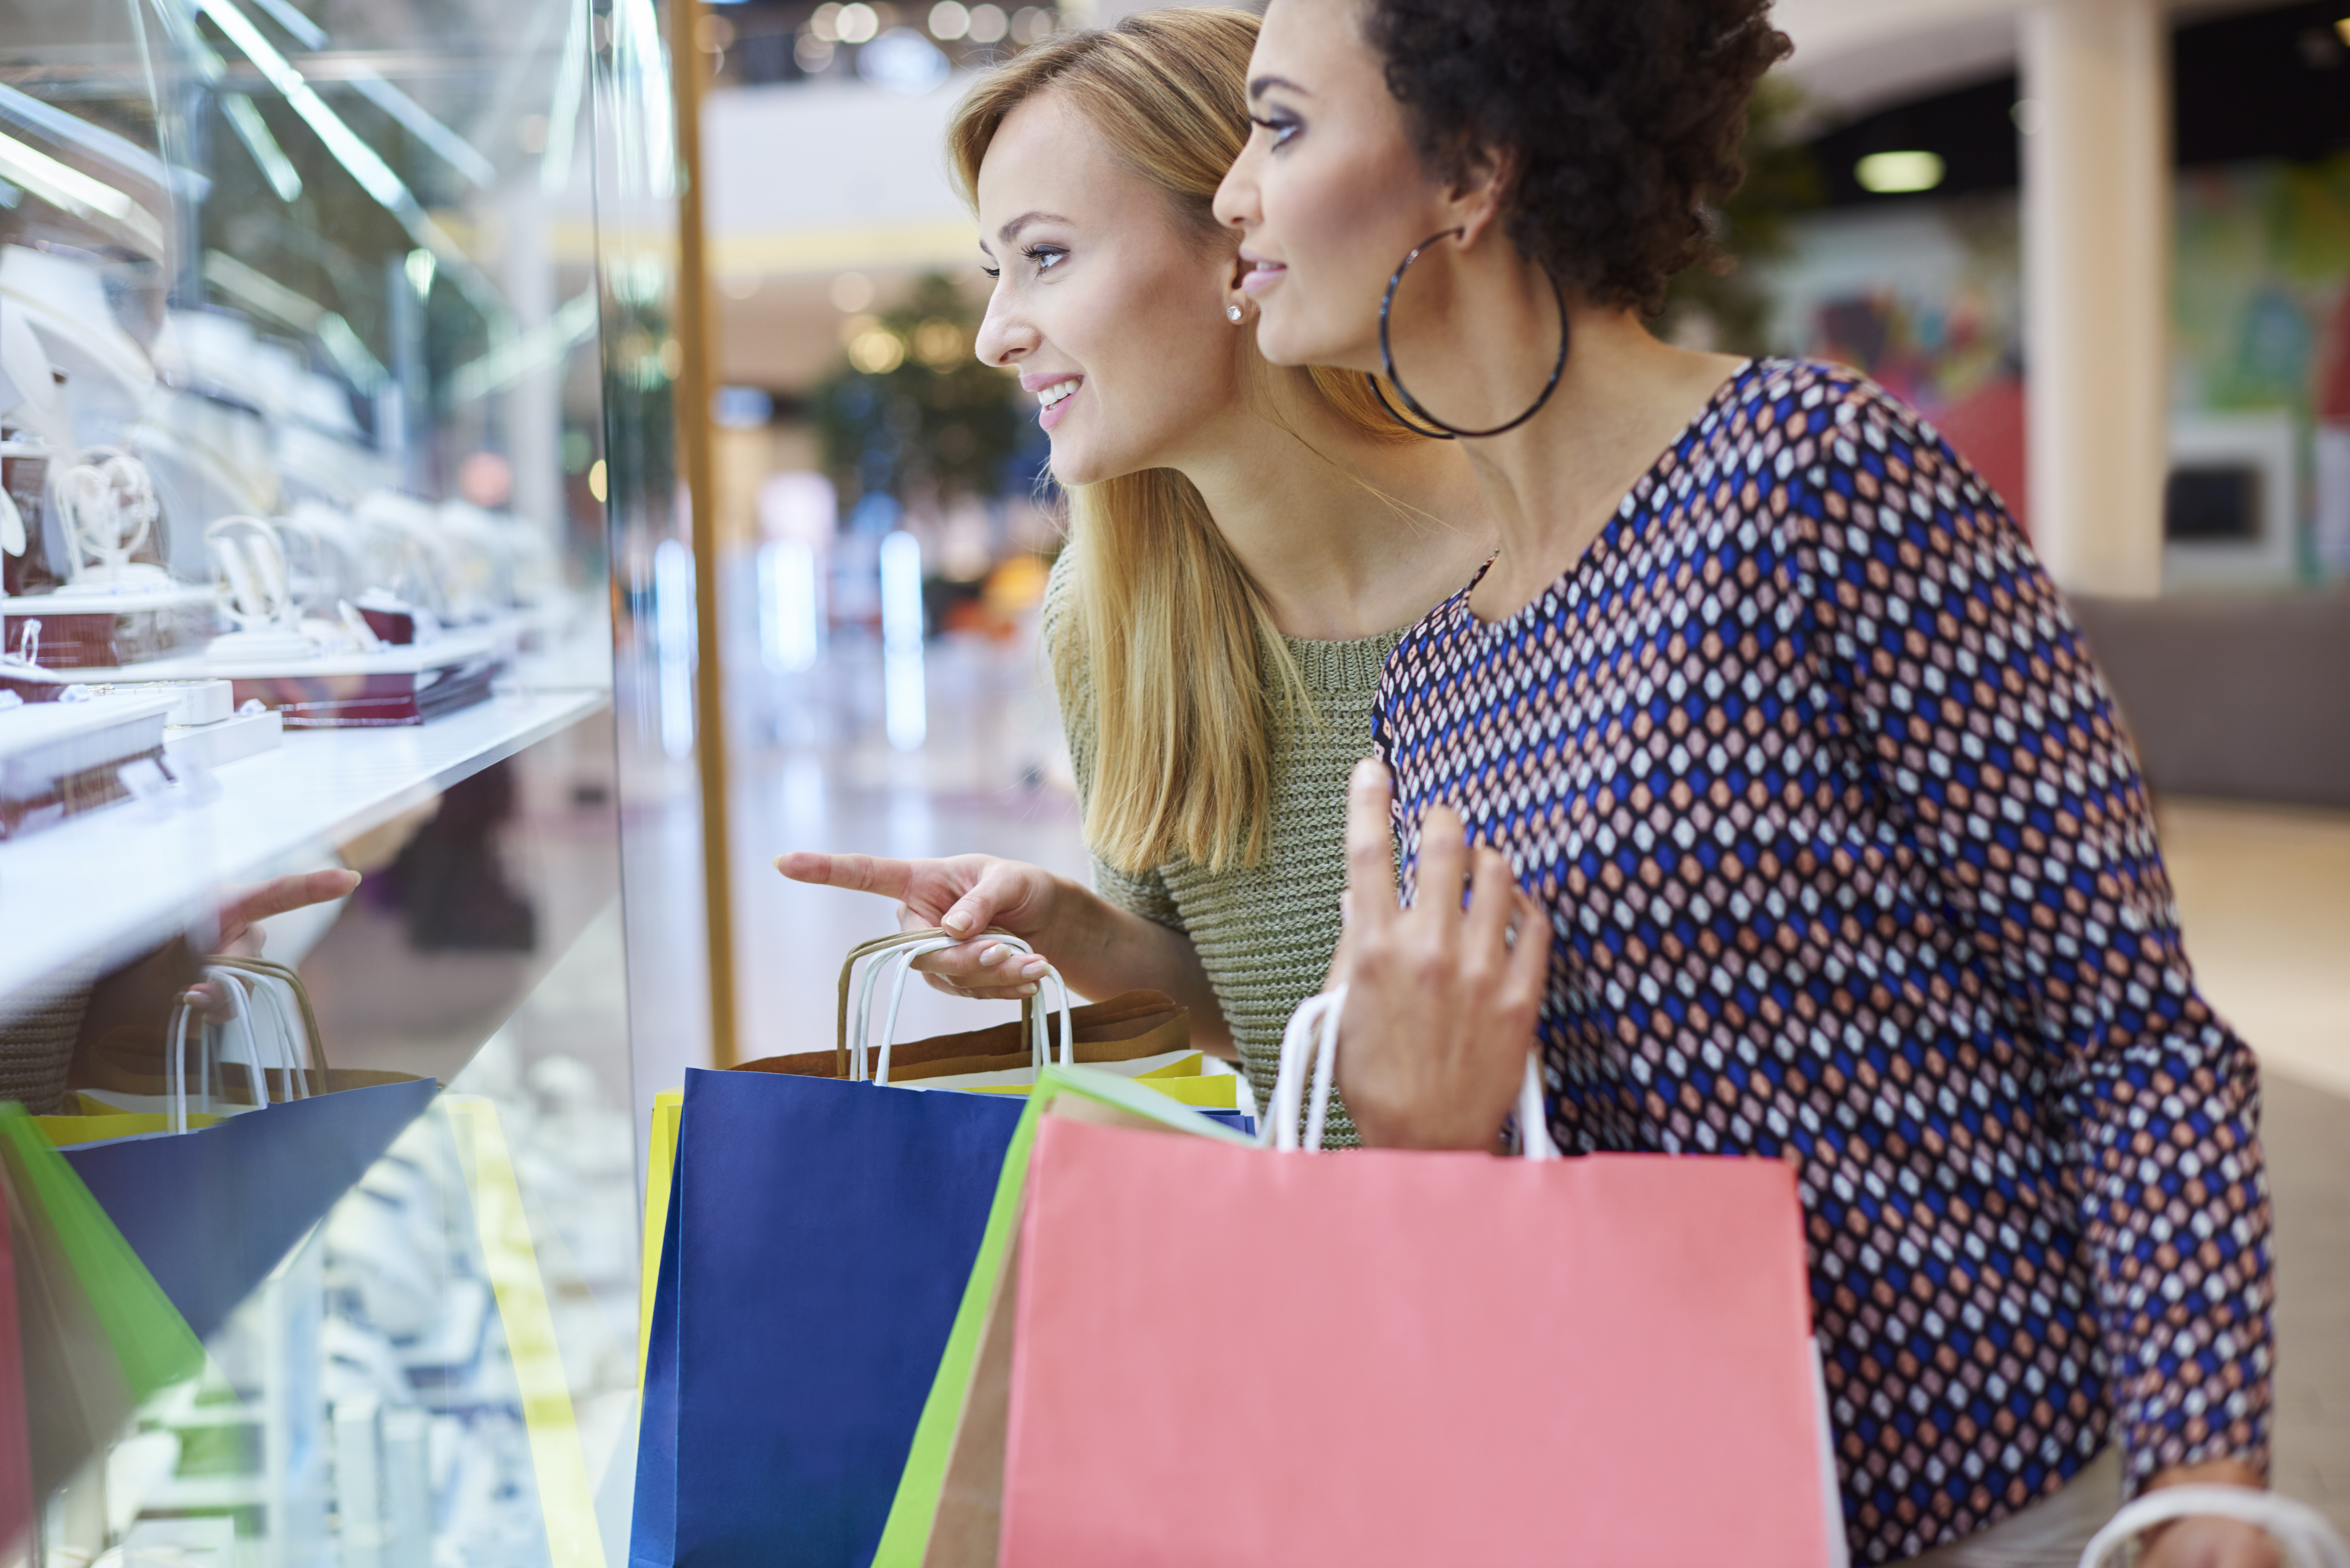 JewelTrace helps bring customers back to the store